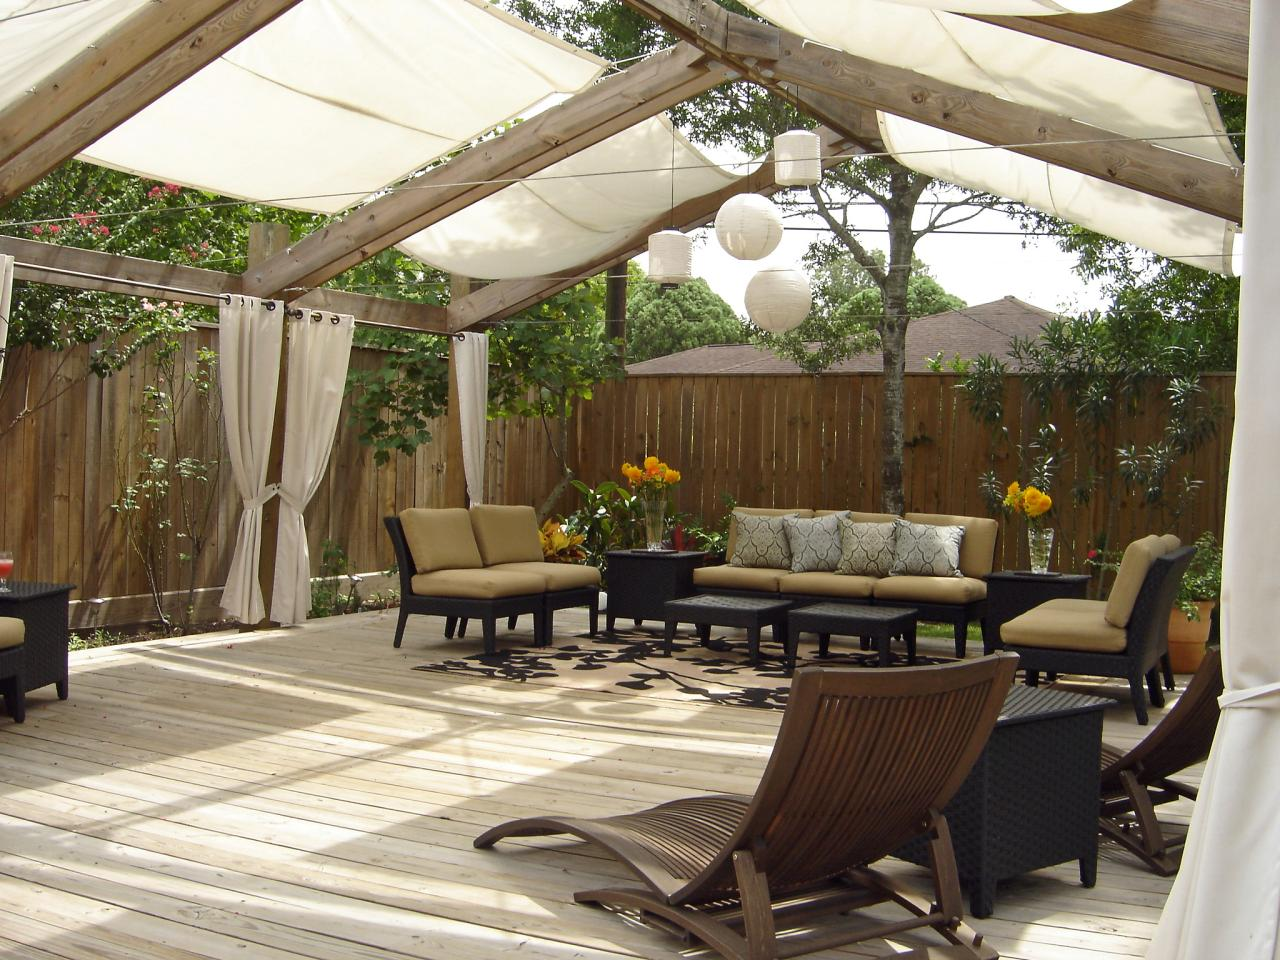 5 diy shade ideas for your deck or patio hgtv 39 s for Patio deck decorating ideas